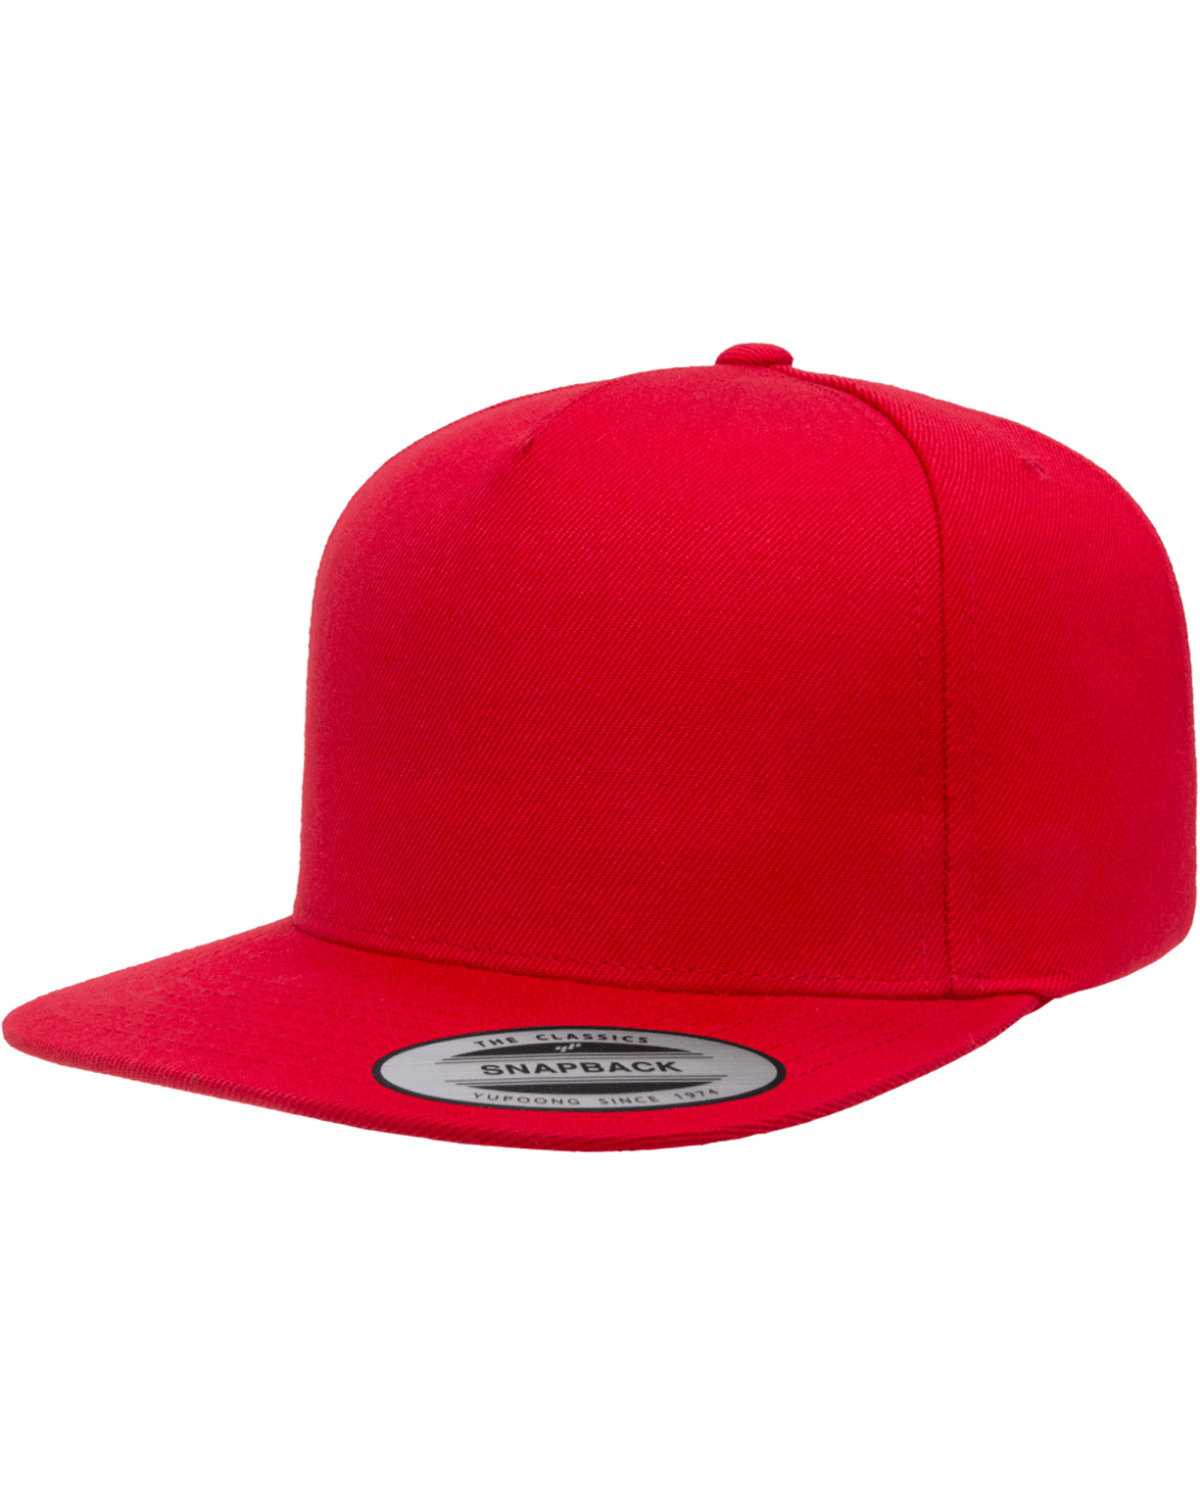 Yupoong Adult 5-Panel Structured Flat Visor Classic Snapback Cap RED